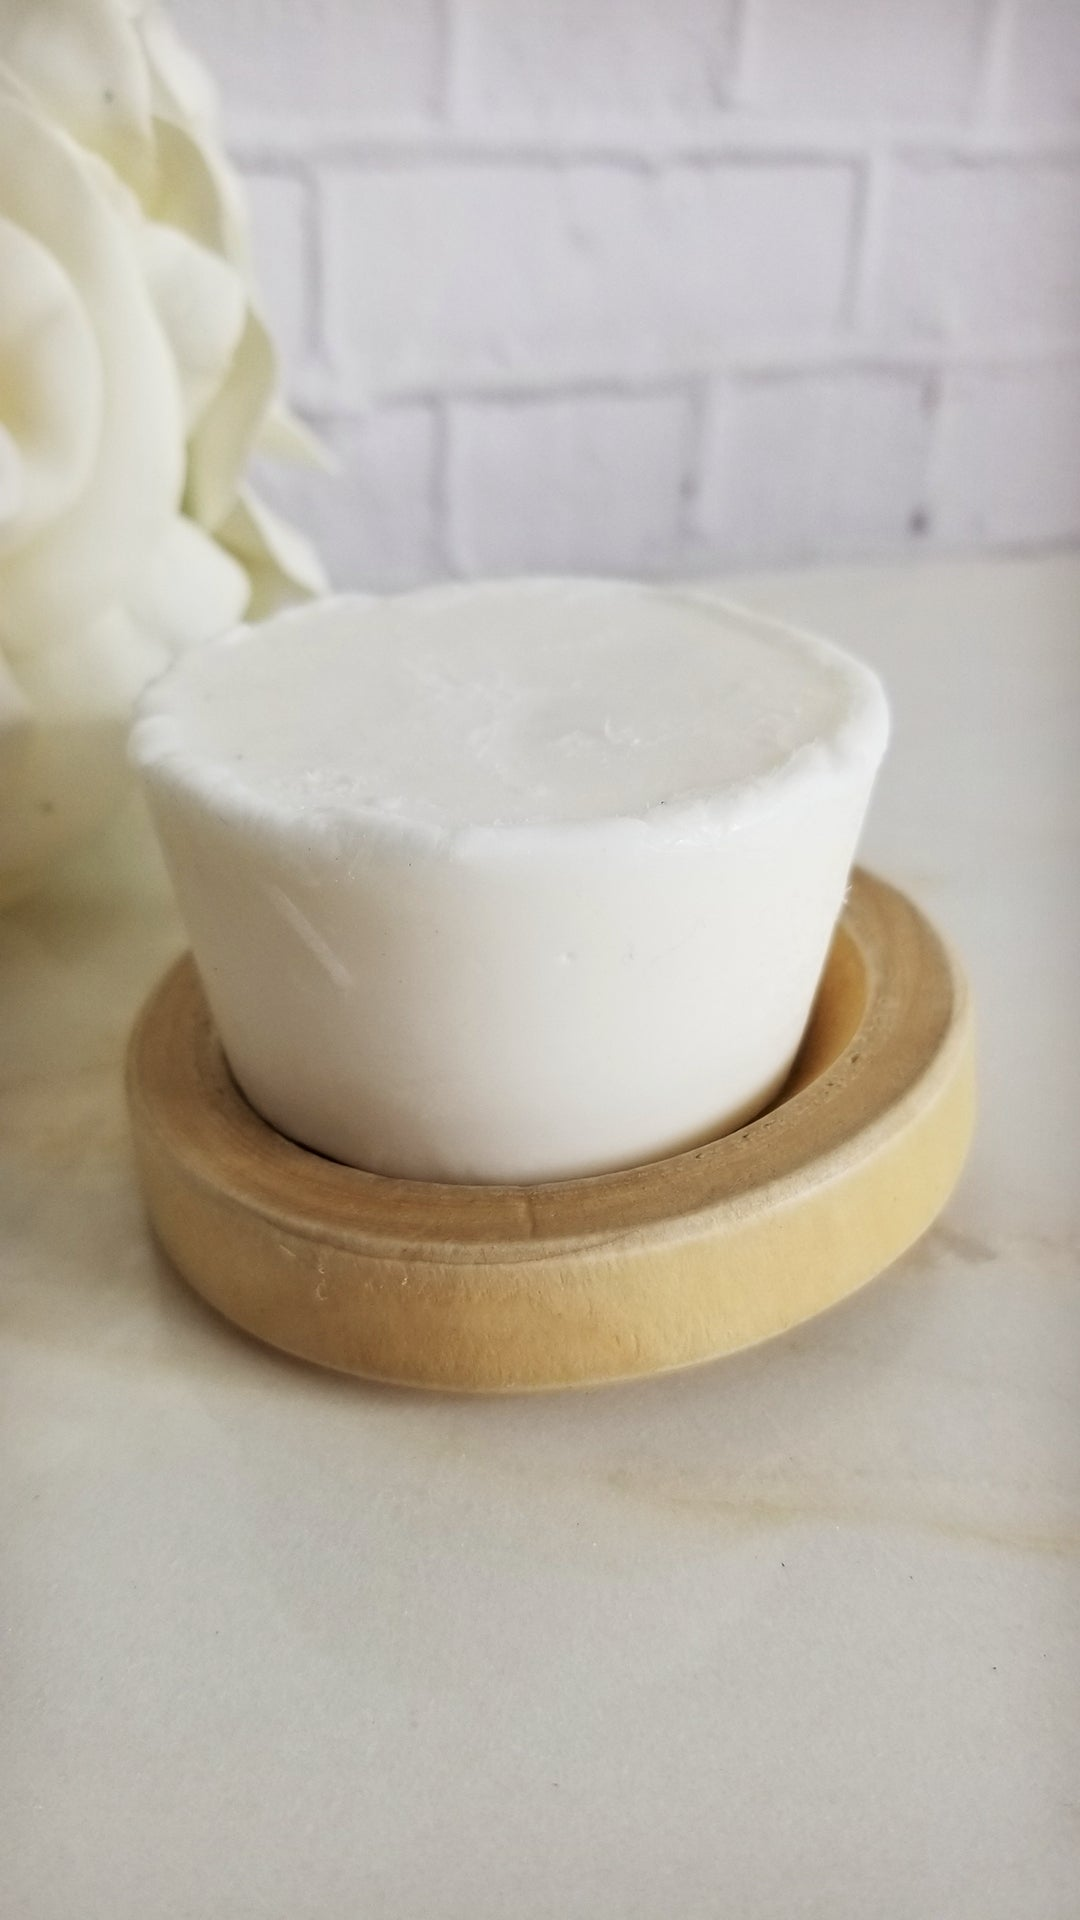 Shave Soap Dish